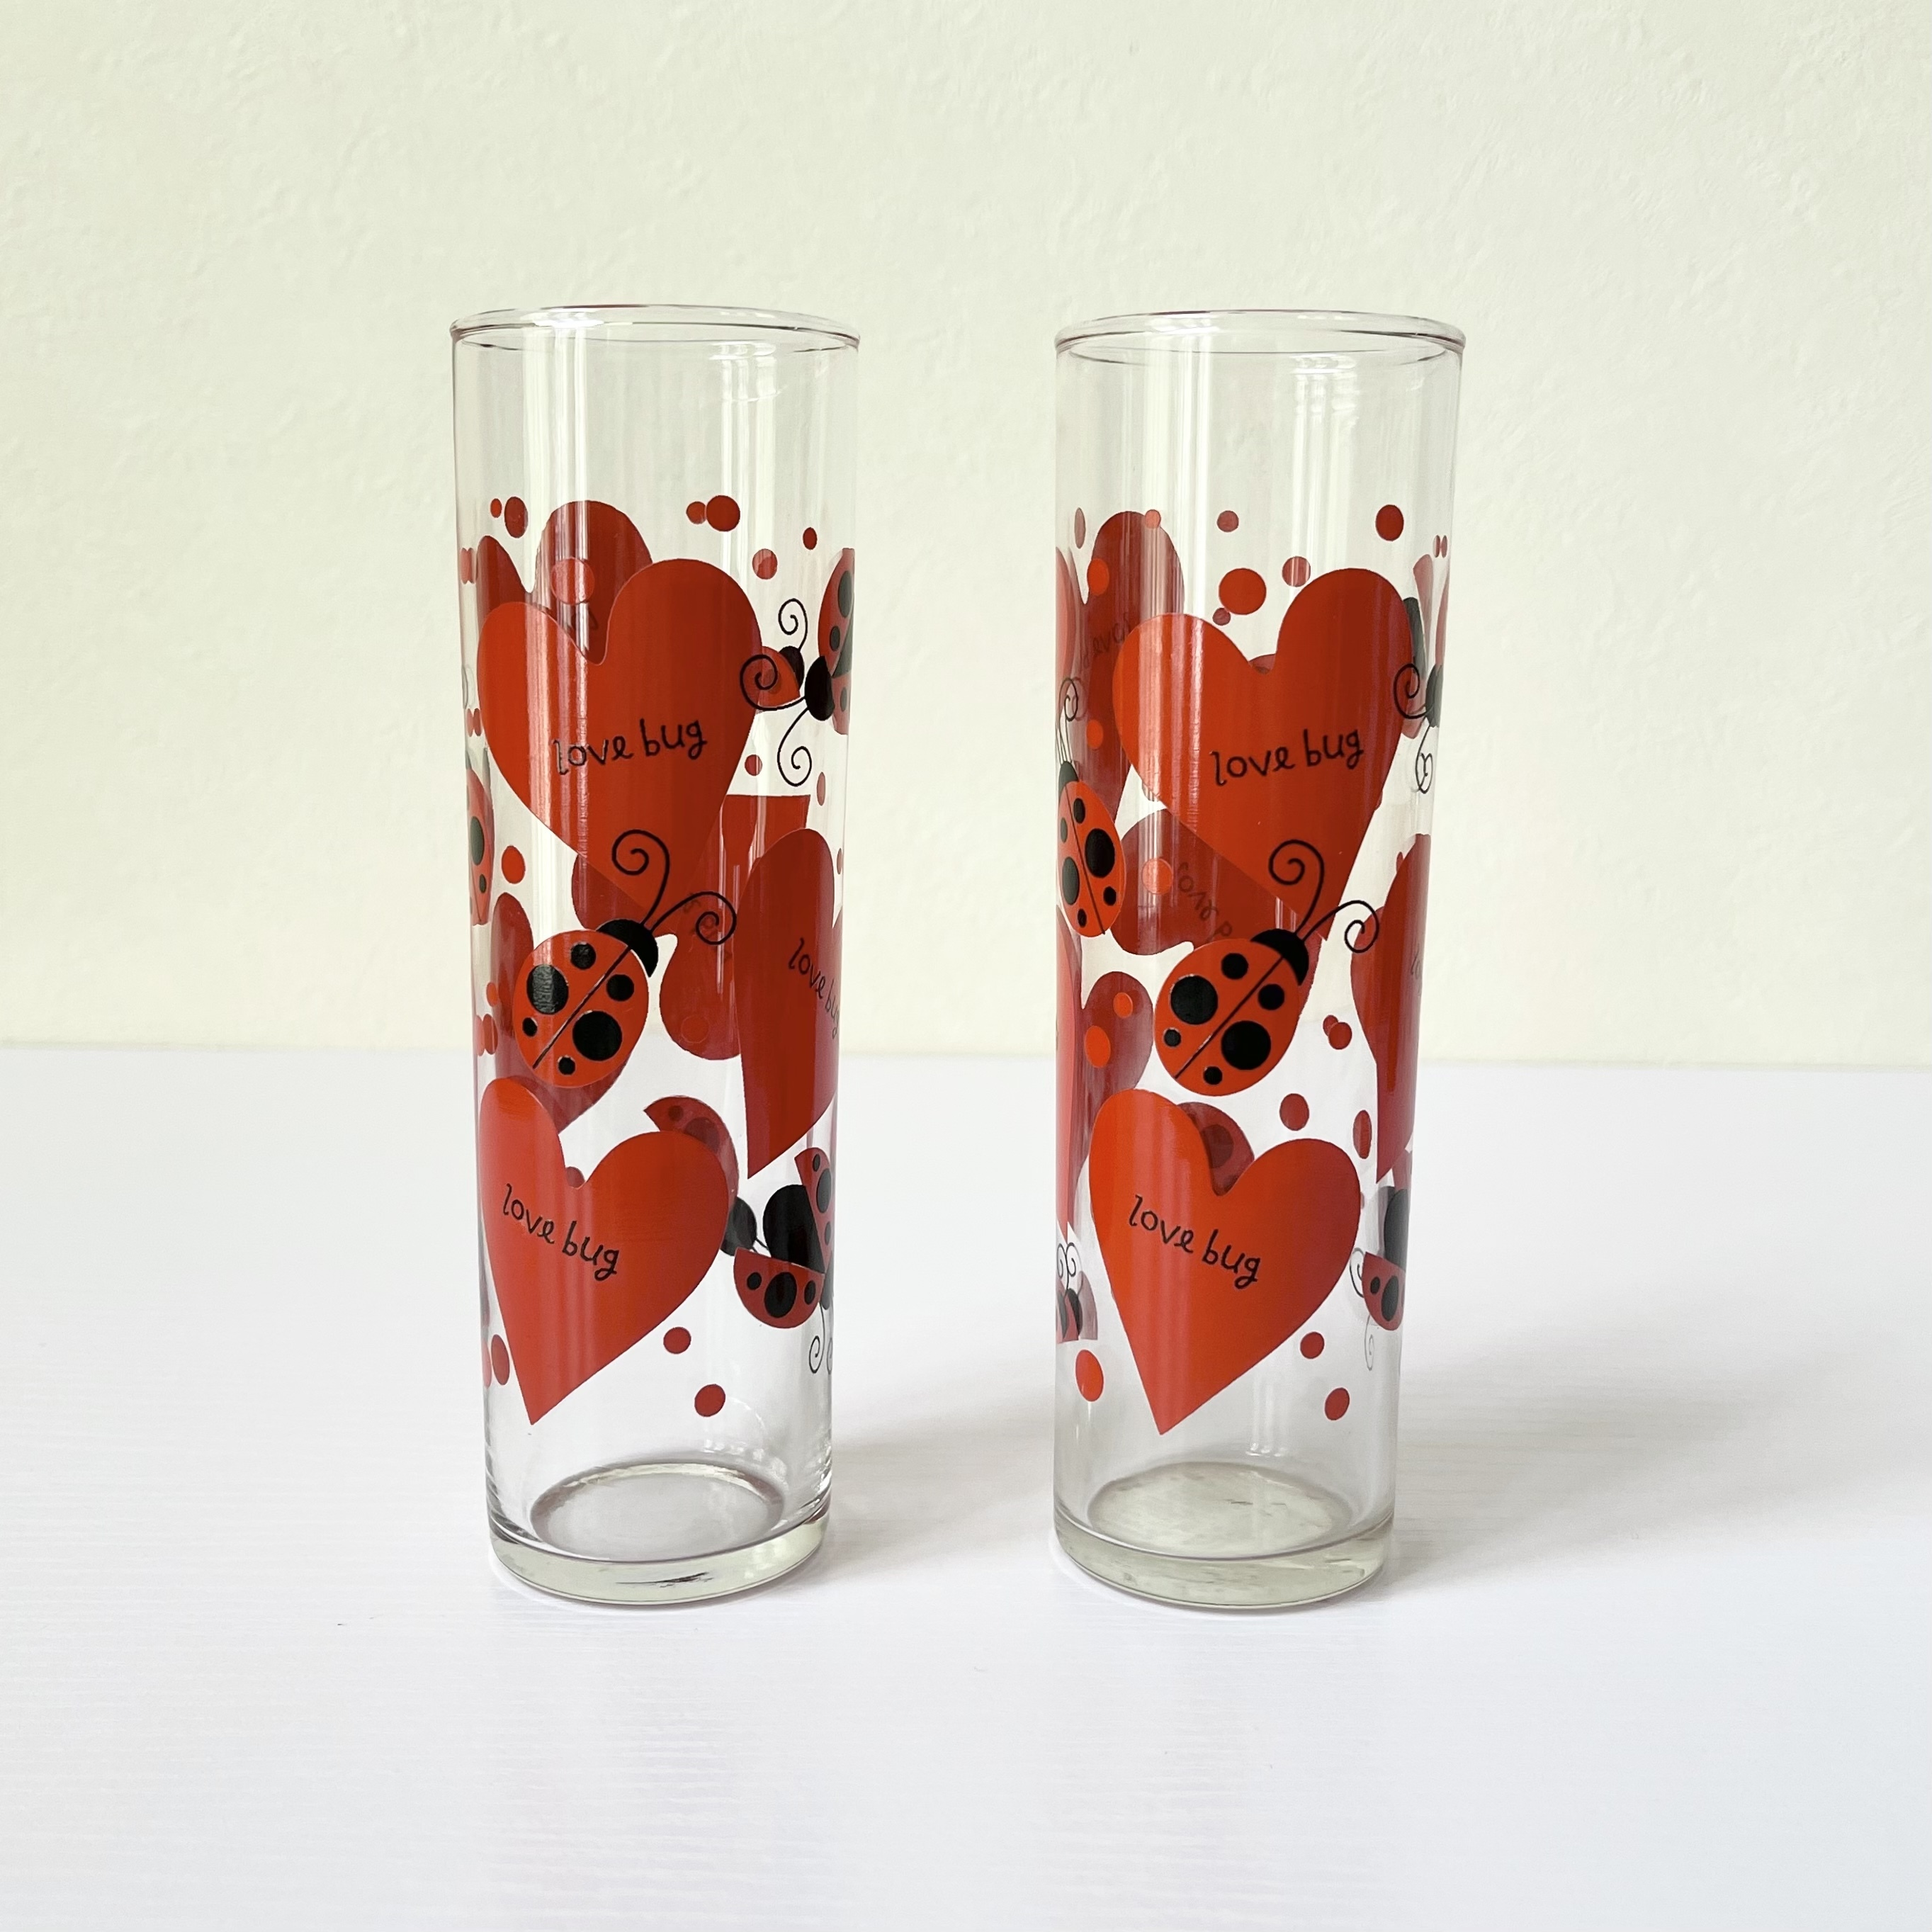 Love Bug by Indiana Glass タンブラーグラス 2個セット アメリカ食器 ヴィンテージ食器